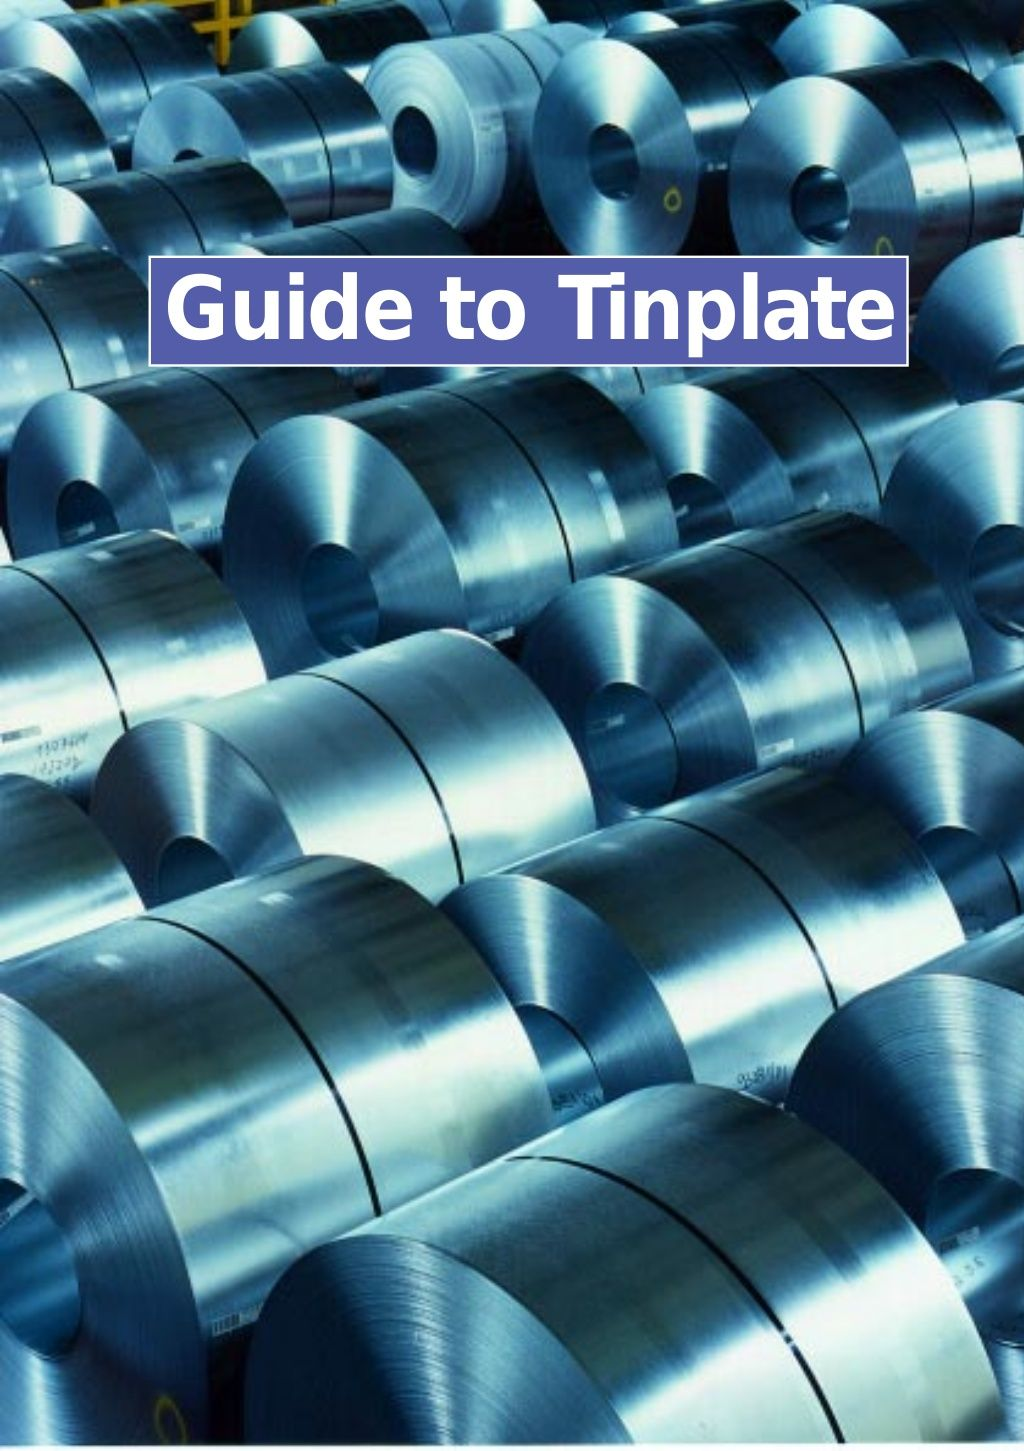 Guide to tinplate by Tony Wallace via slideshare